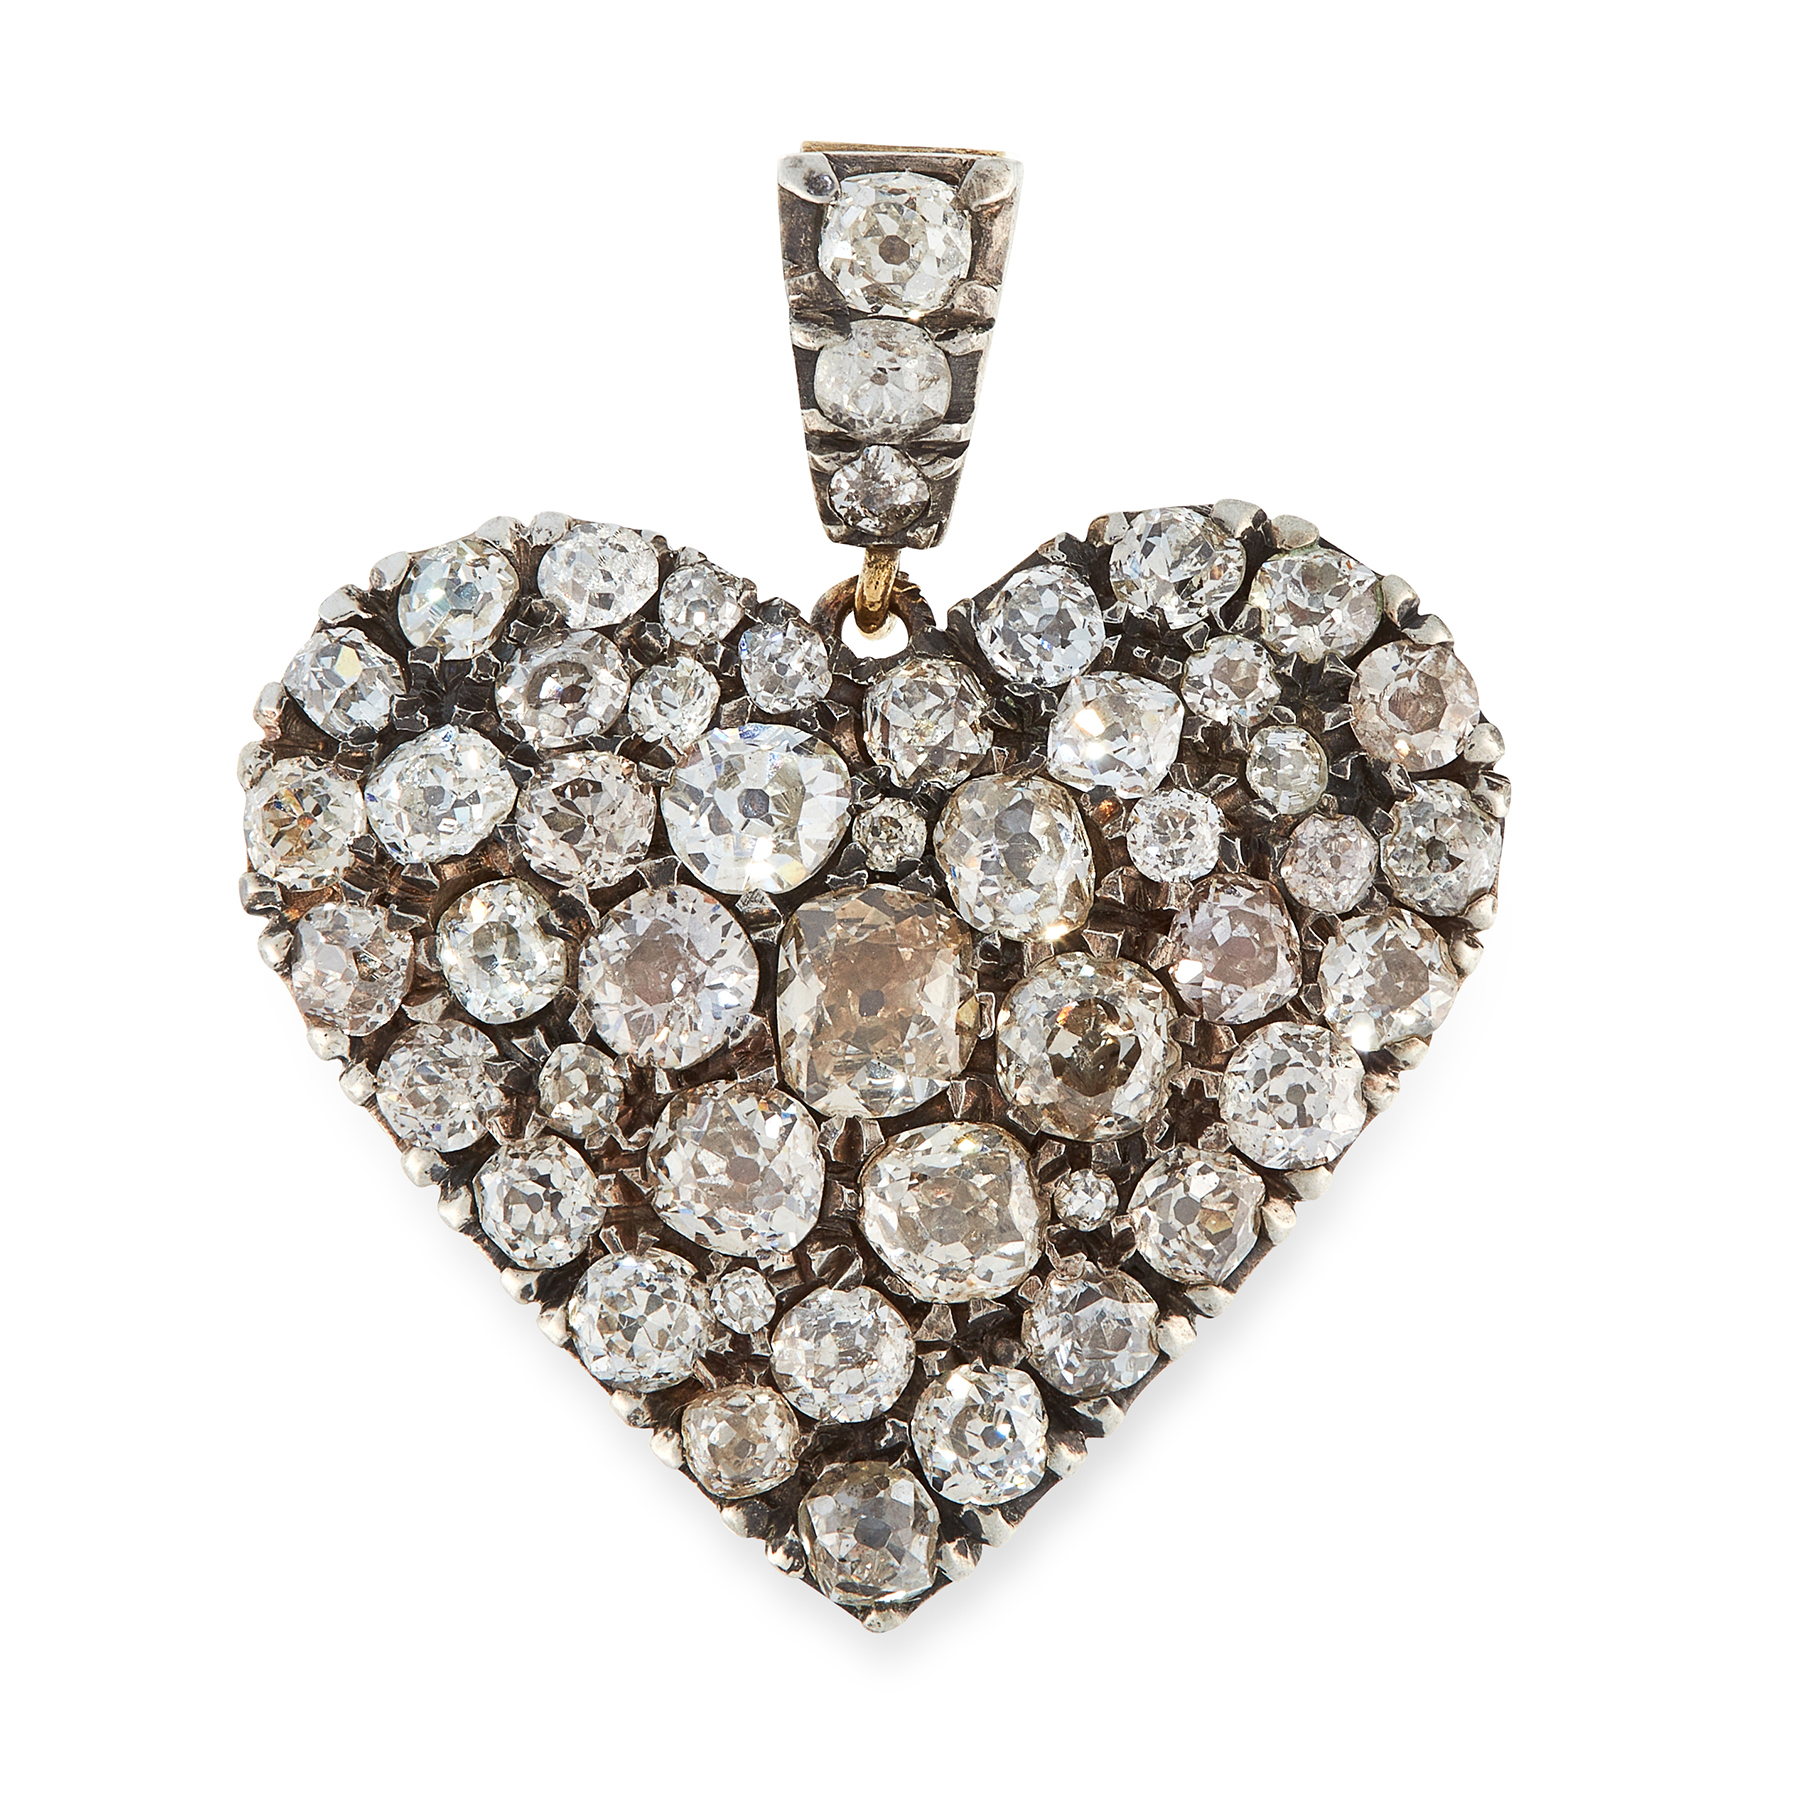 A DIAMOND HEART PENDANT in yellow gold and silver, designed as a heart, set allover to the front - Image 2 of 2